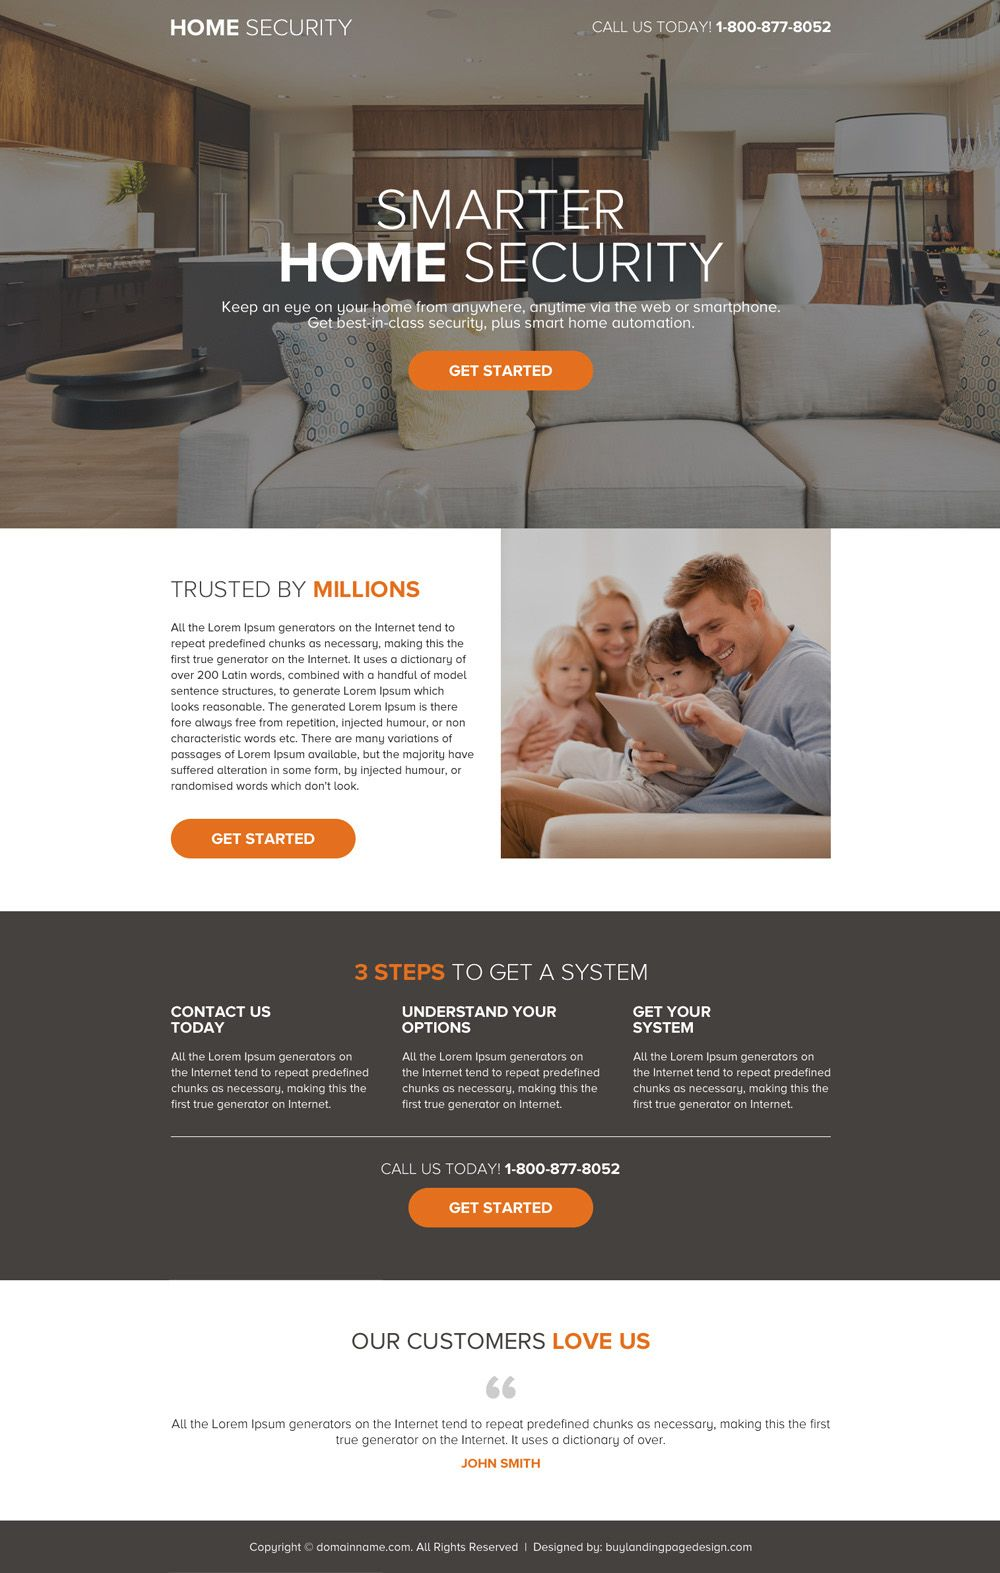 Security Services Mini Call To Action Best Landing Page Best Landing Page Design Landing Page Design Smart Home Security